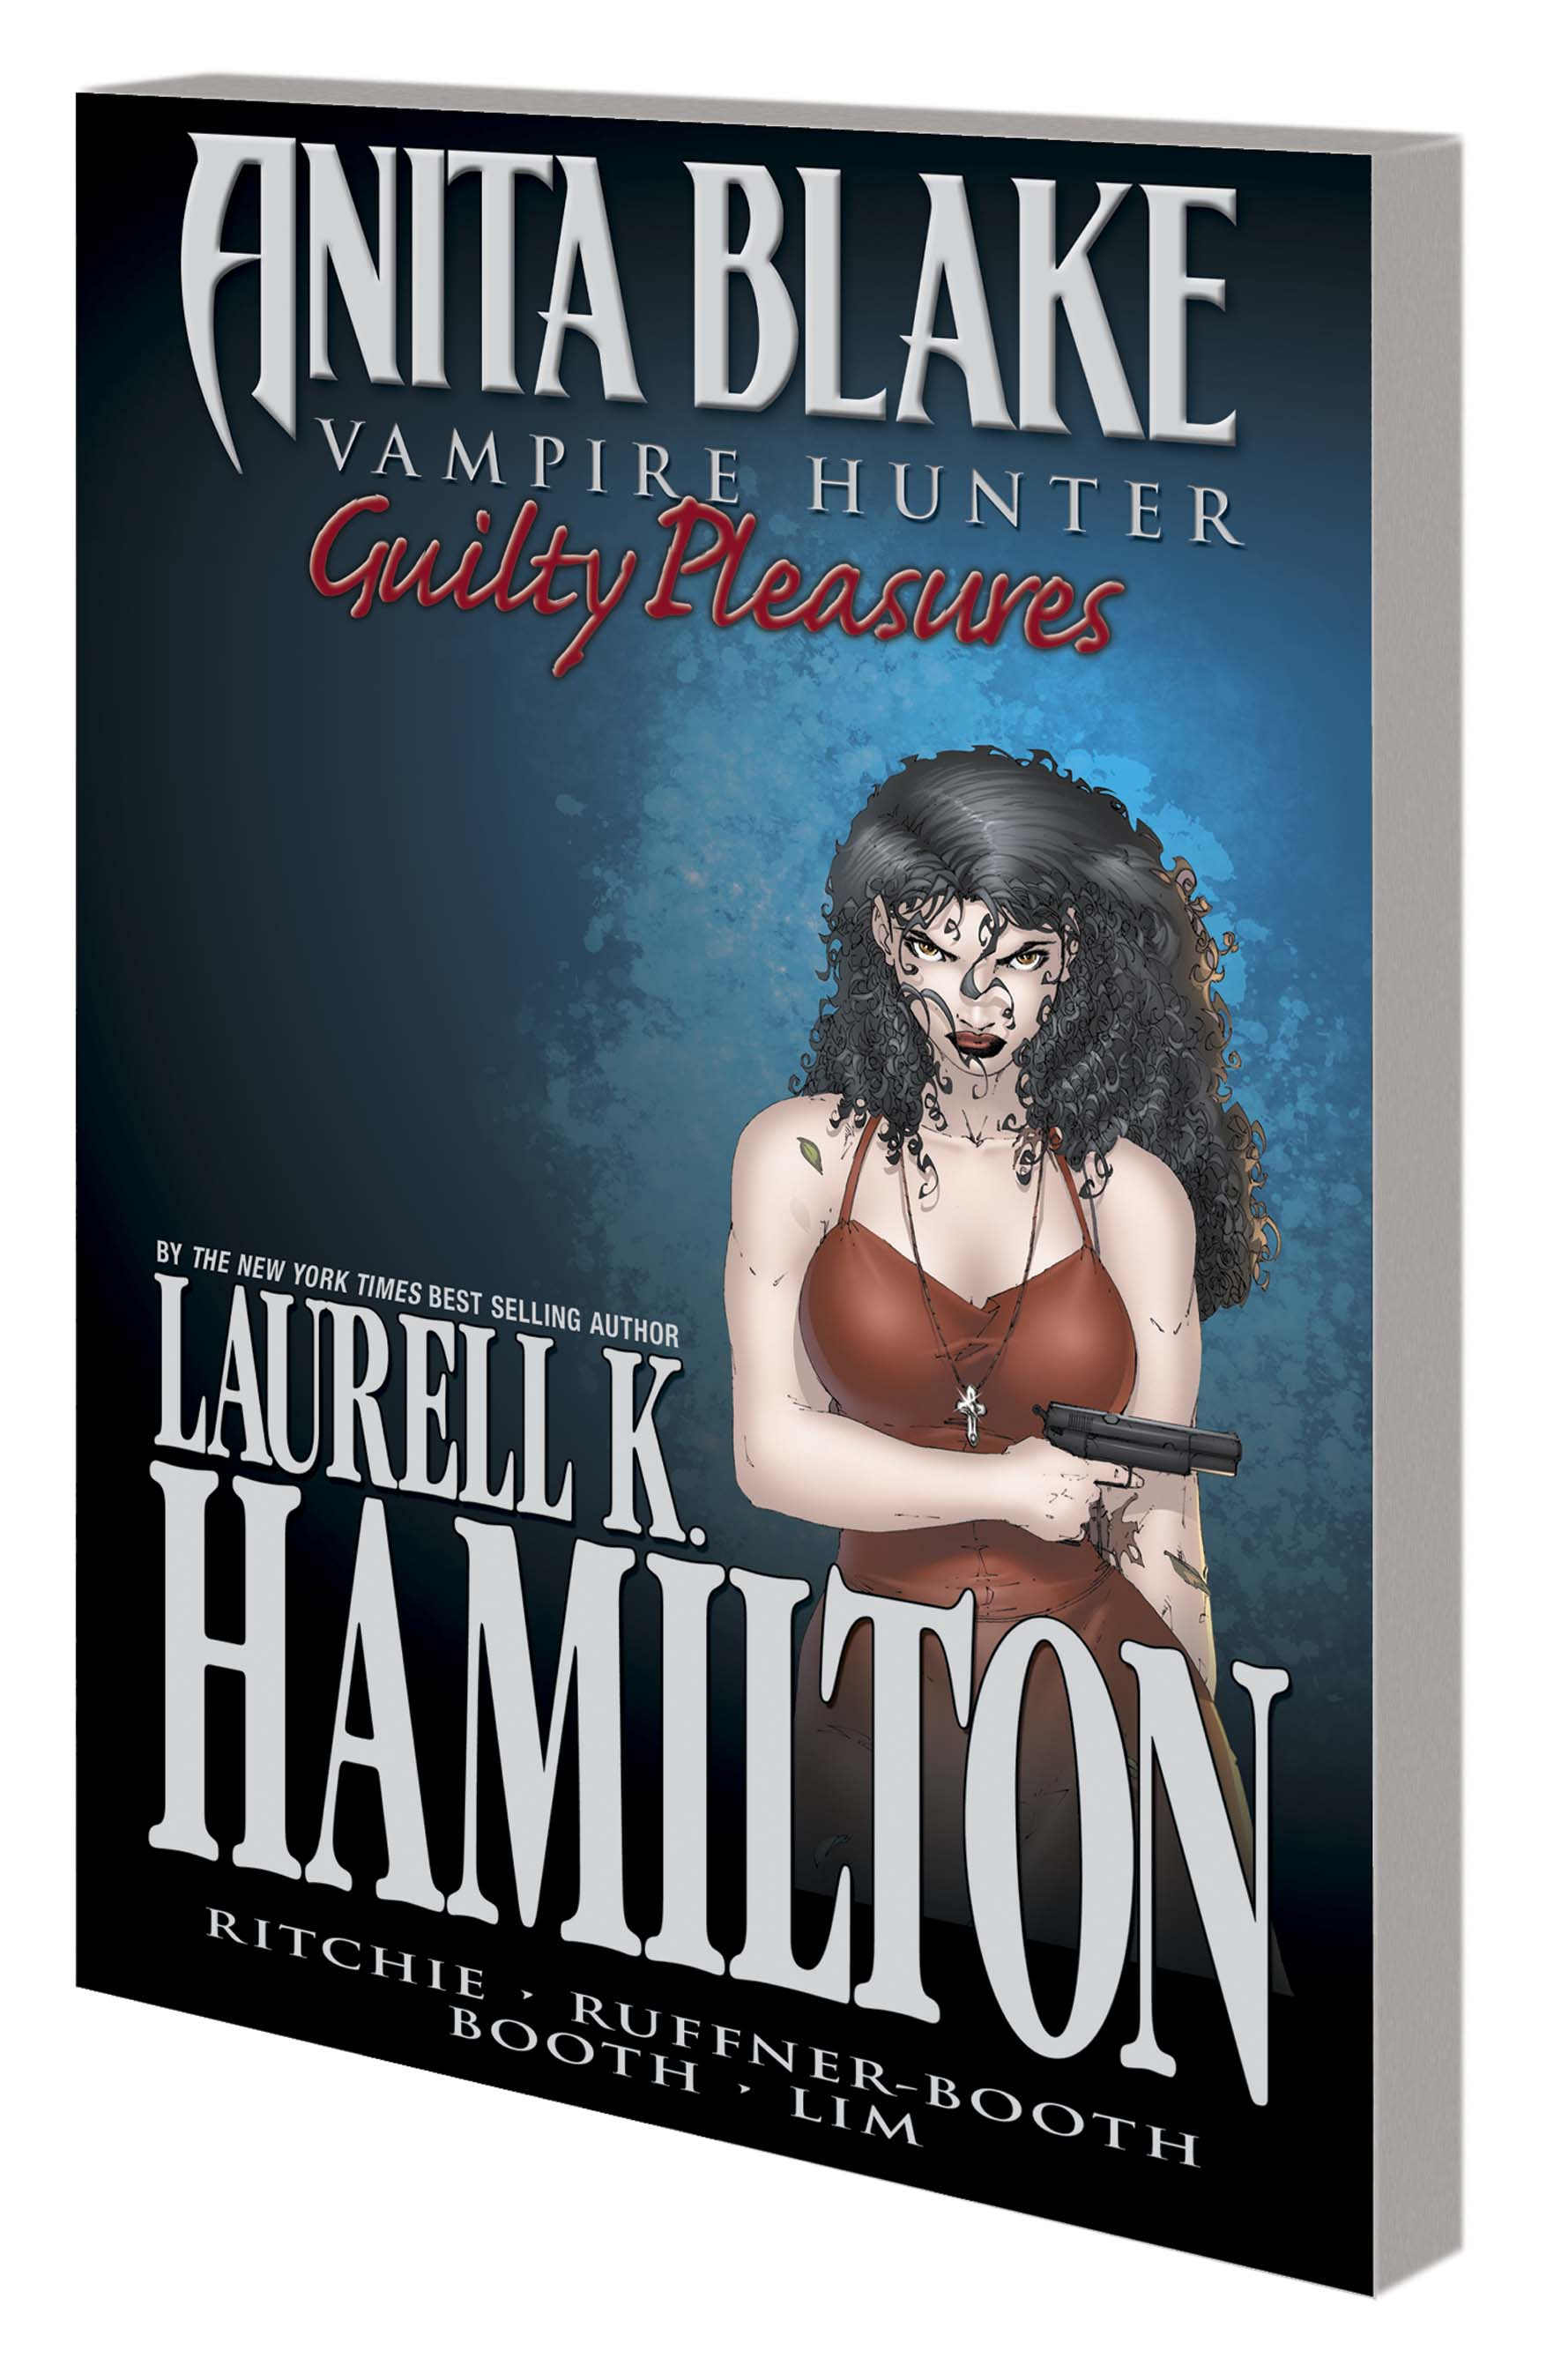 Anita Blake, Vampire Hunter: Guilty Pleasures Ultimate Collection (Trade Paperback)